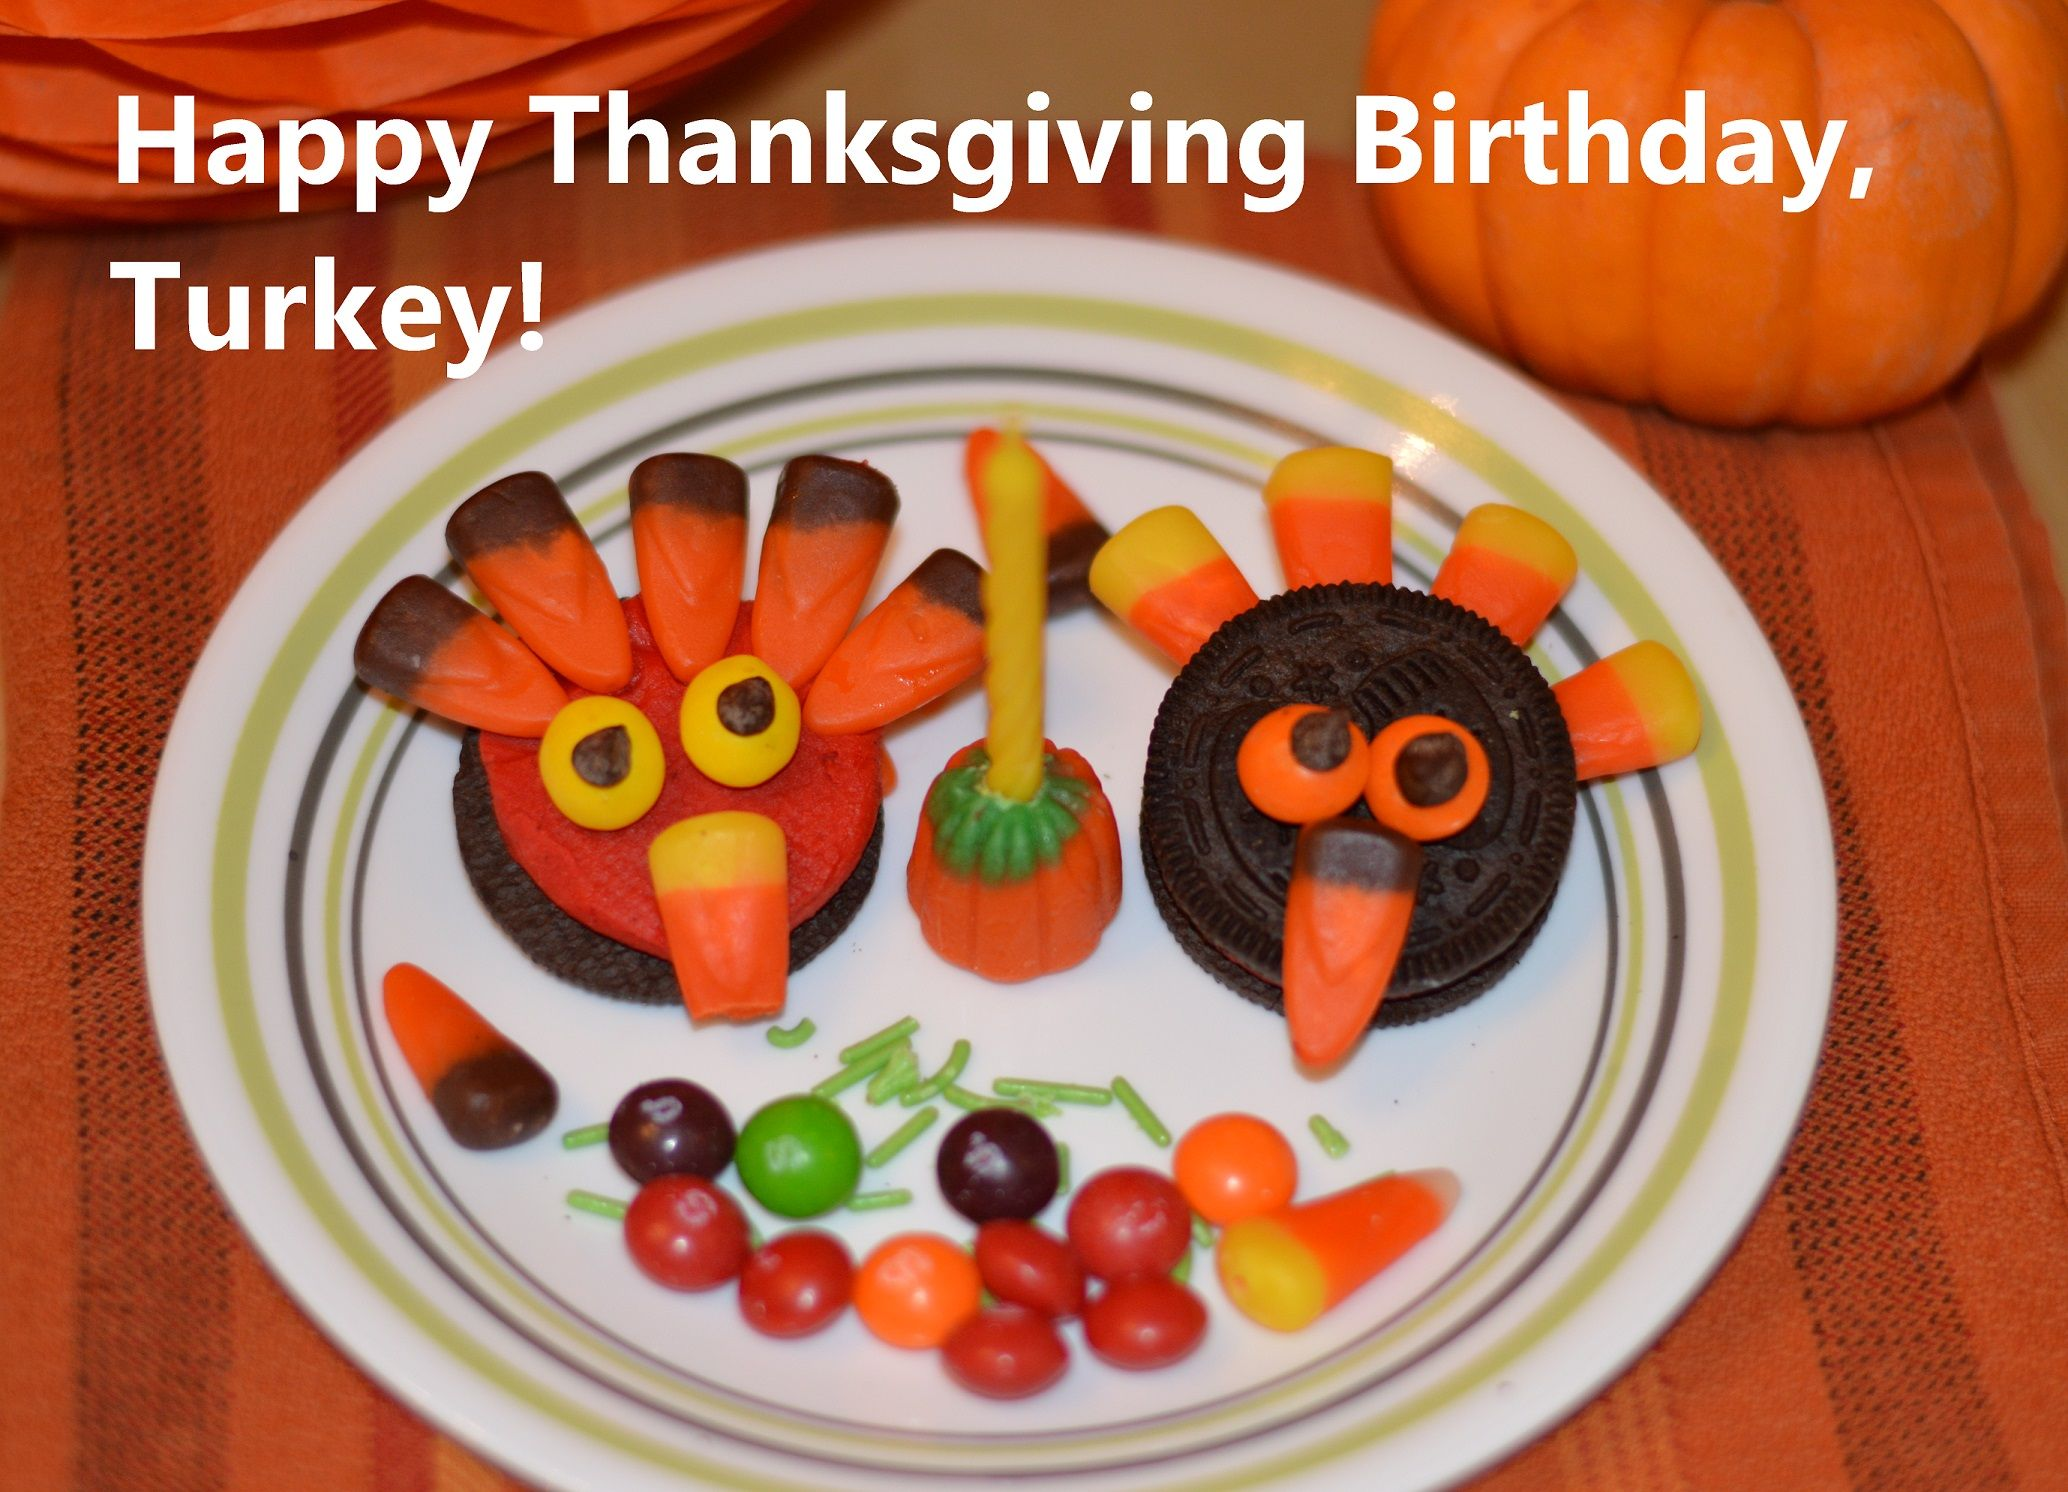 Happy Thanksgiving Birthday Turkey Counting Candles